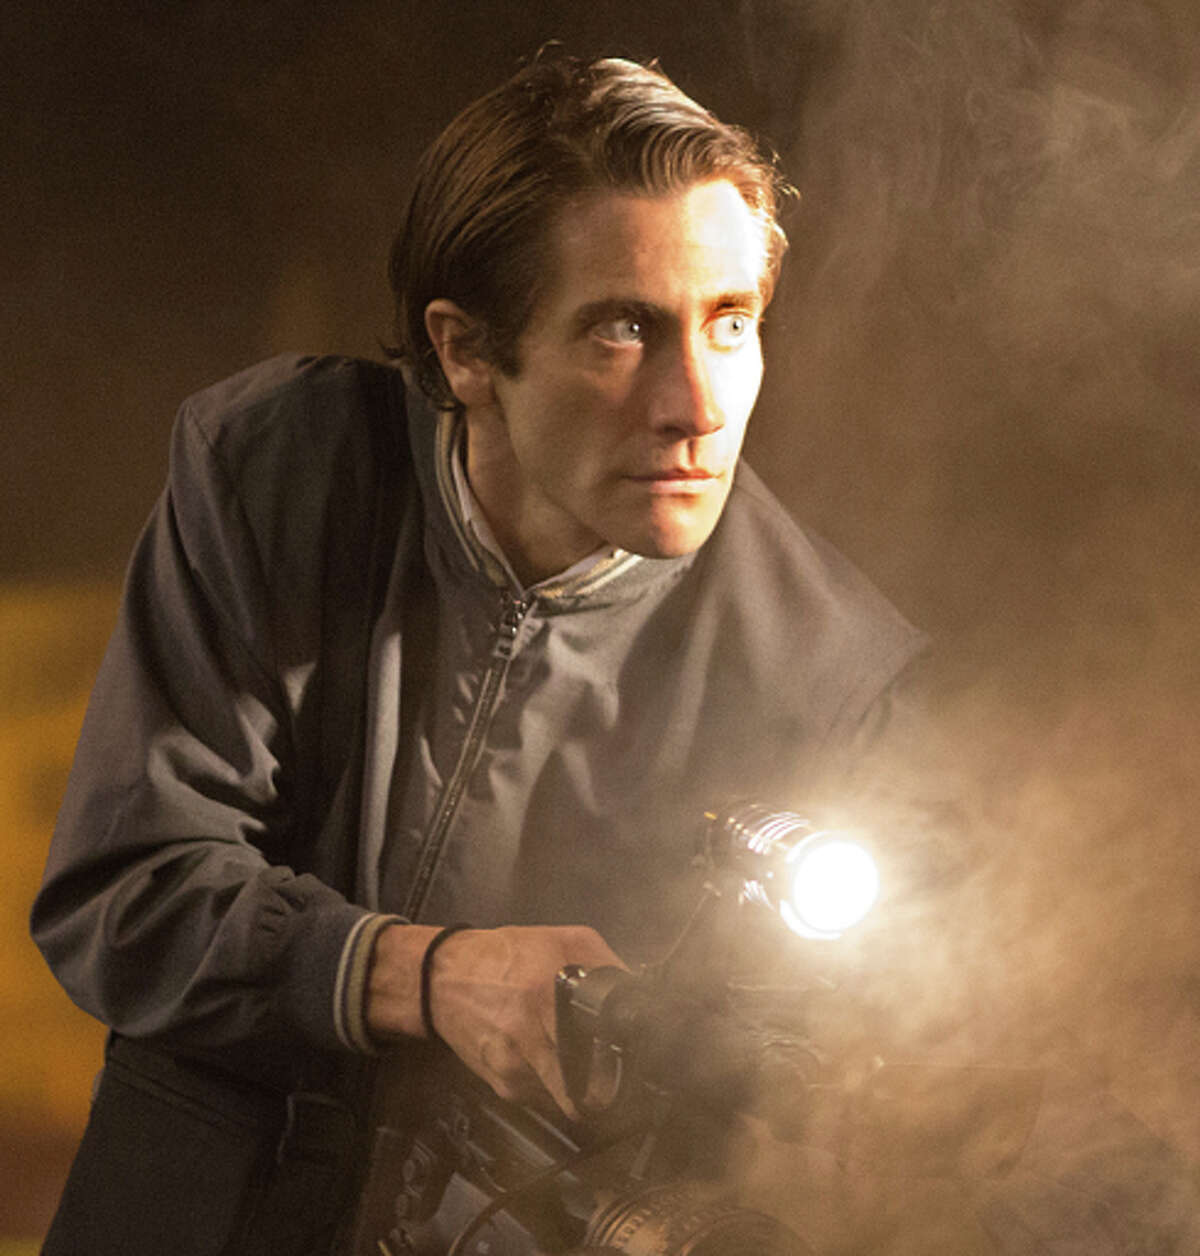 Lou (Jake Gyllenhaal) takes on a risky gig in